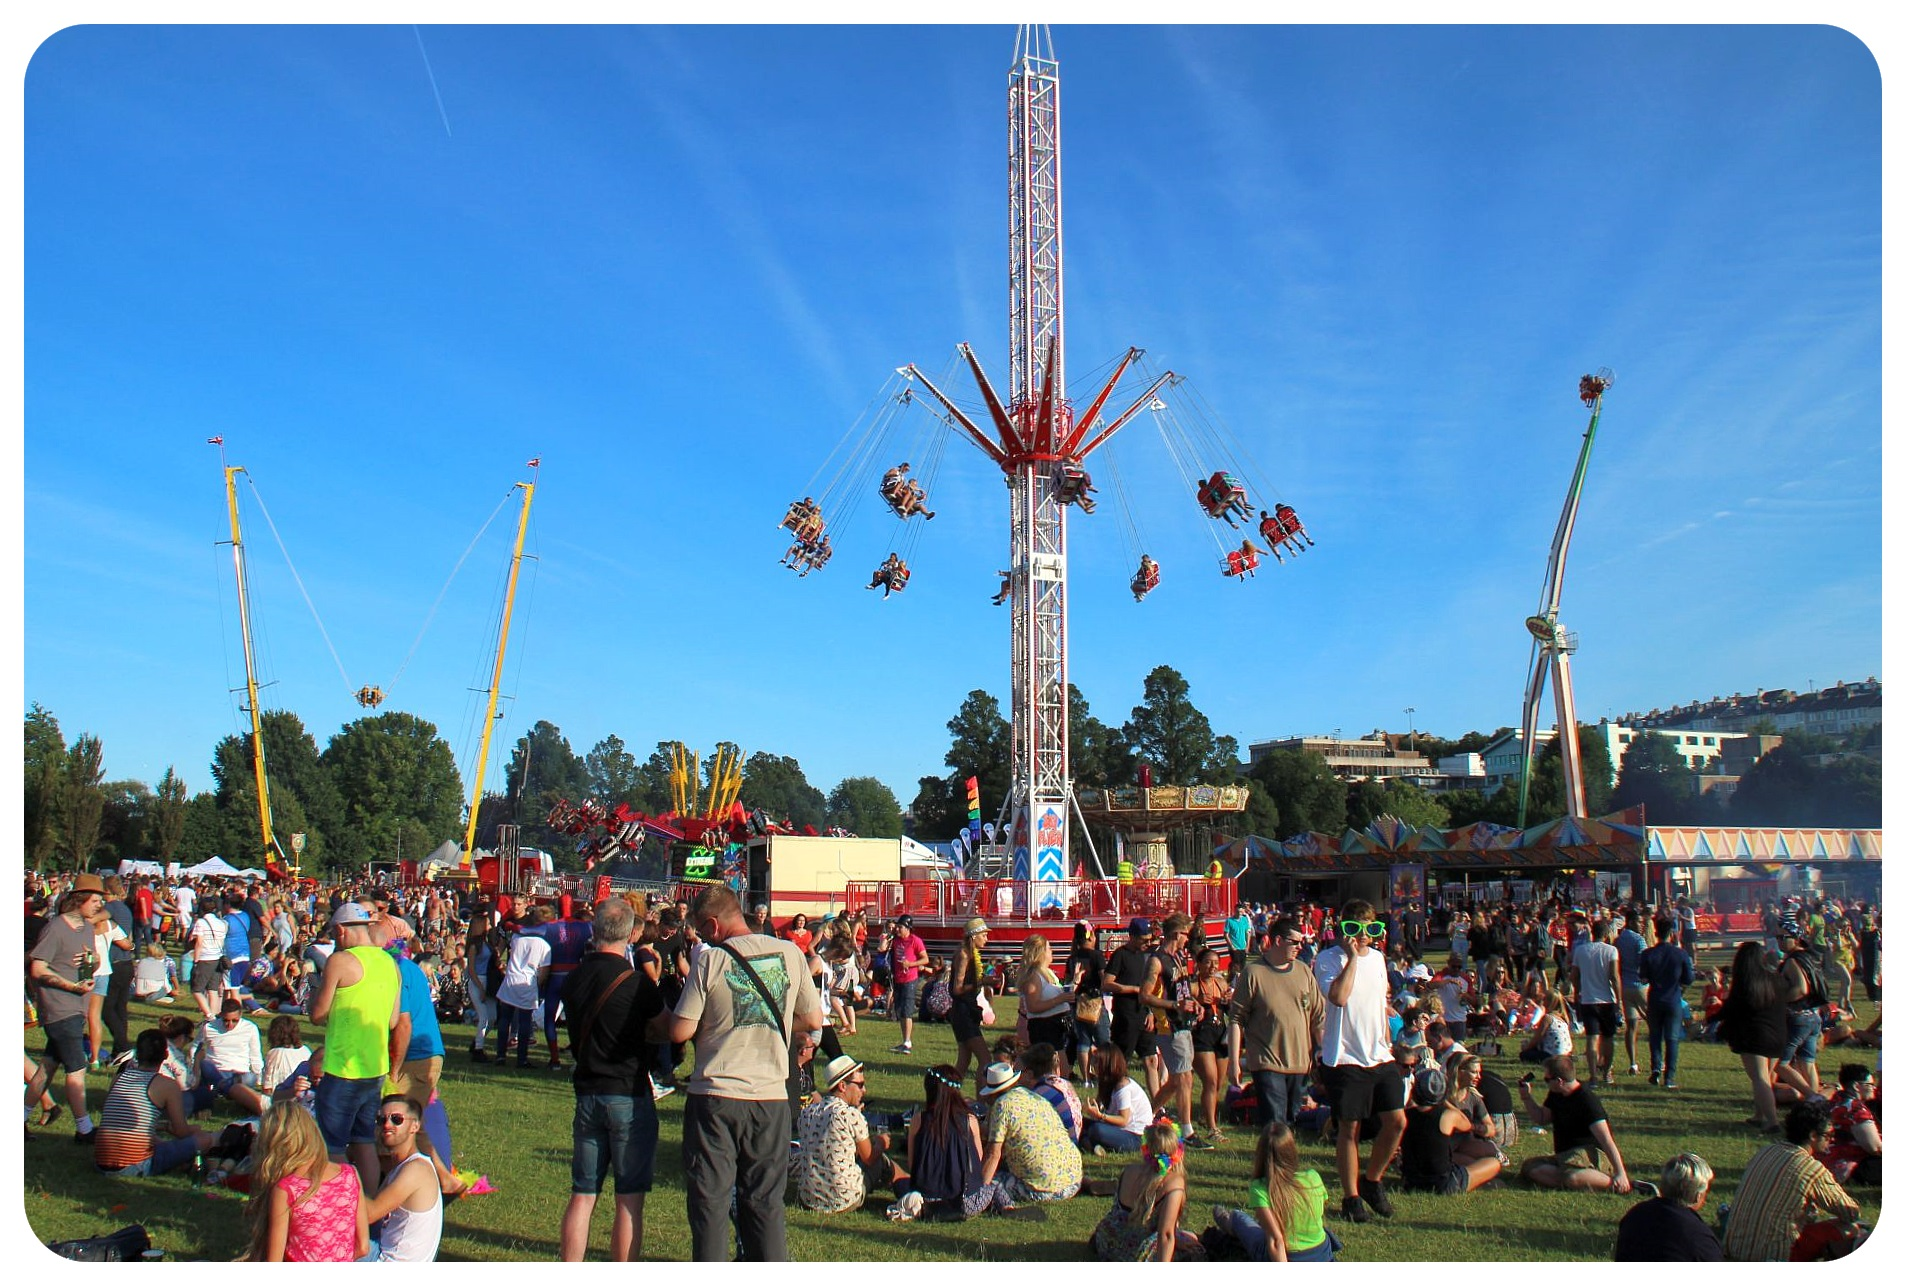 brighton pride festival grounds carousels